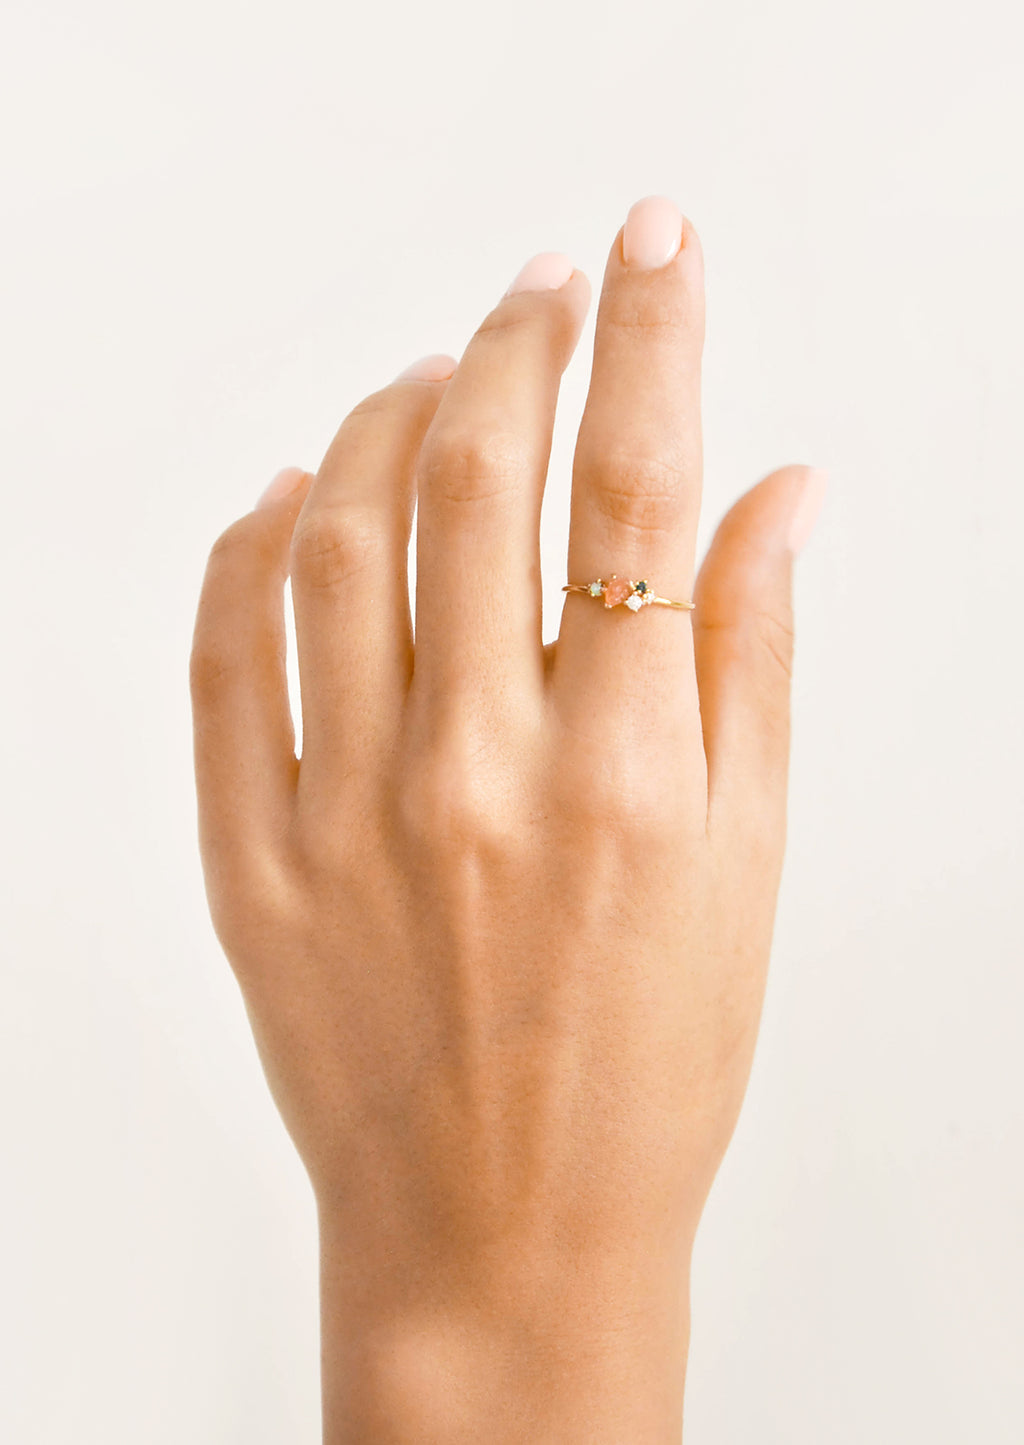 4: Model shot of hand wearing slim gold ring.